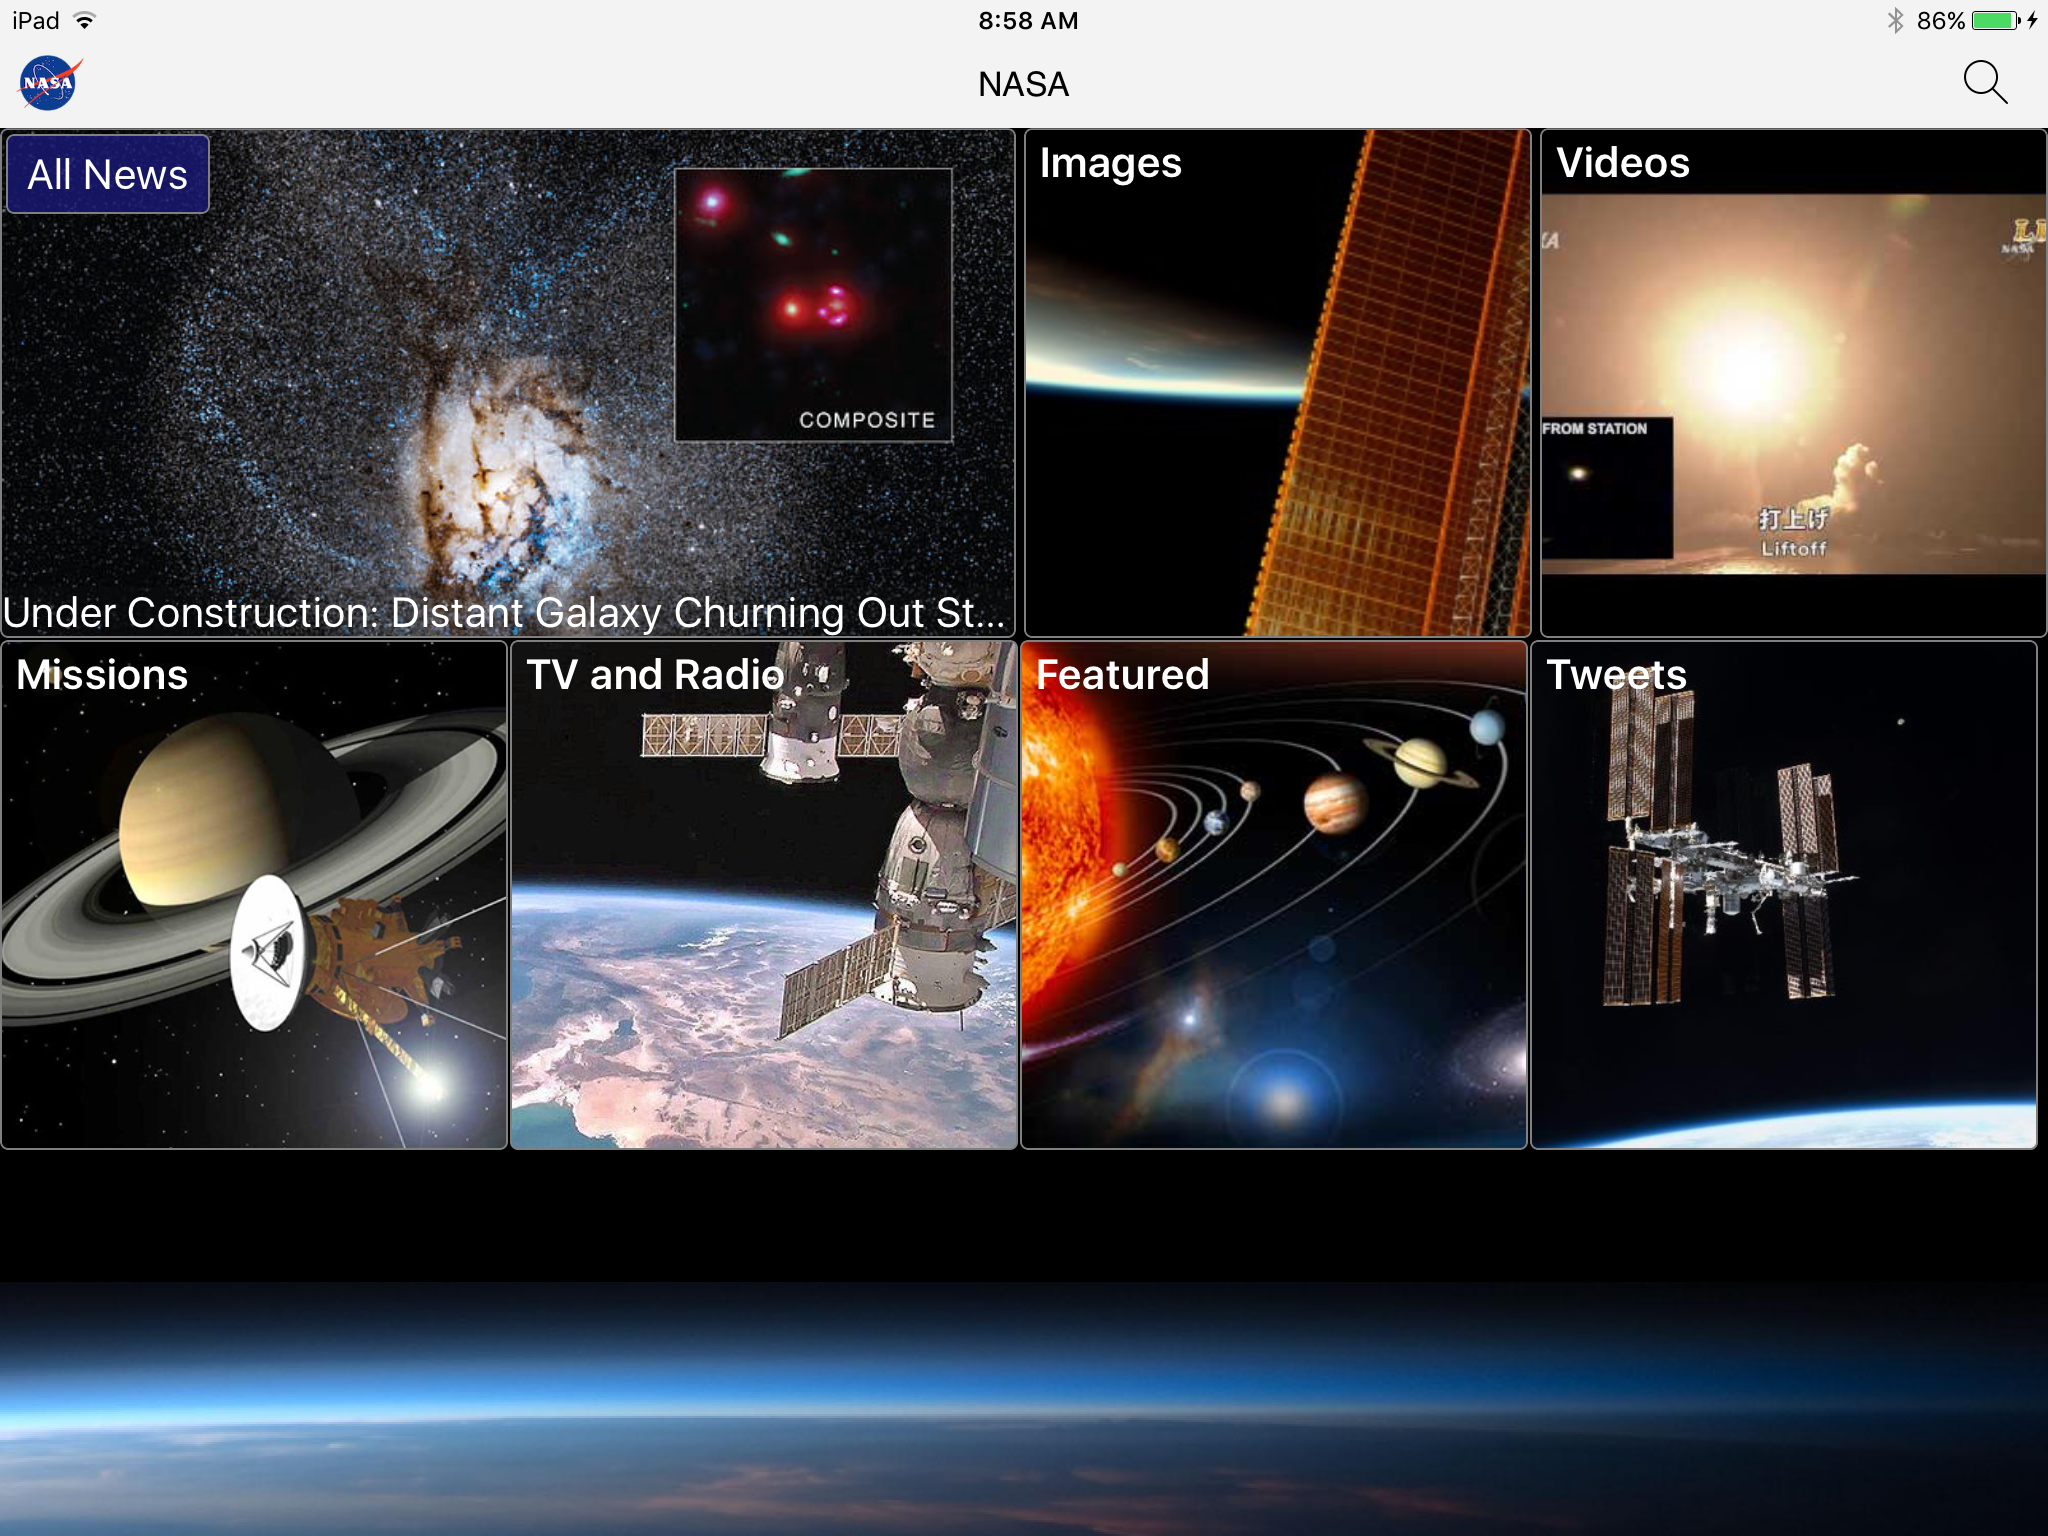 NASA App for Smartphones, Tablets and Digital Media Players | NASA